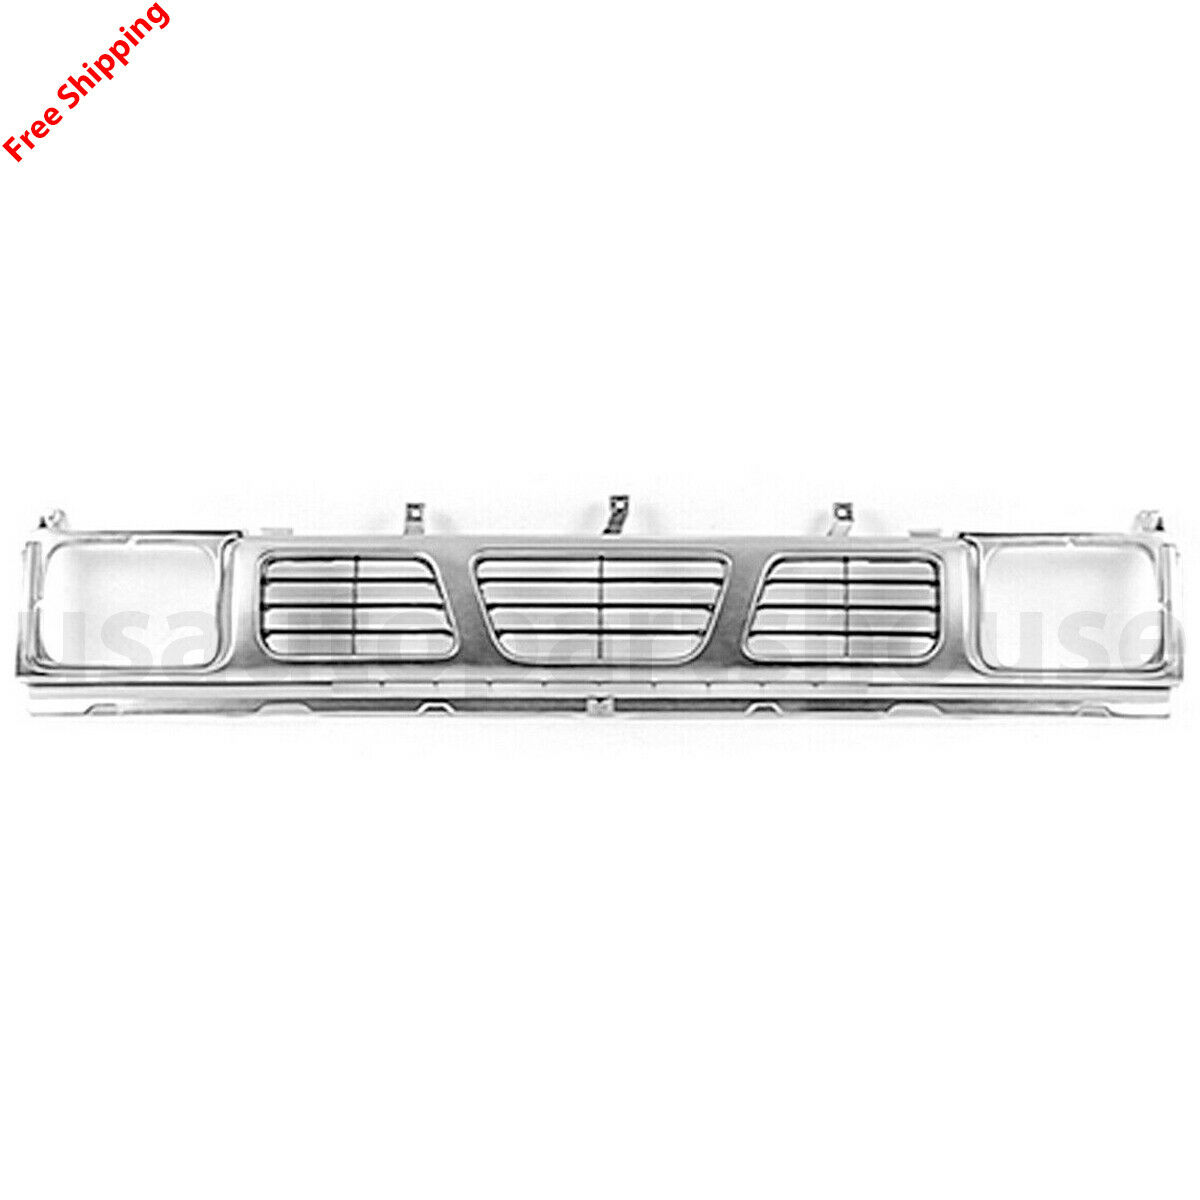 Pickup NI1200115 CPP Silver Front Grille Assembly for Nissan D21